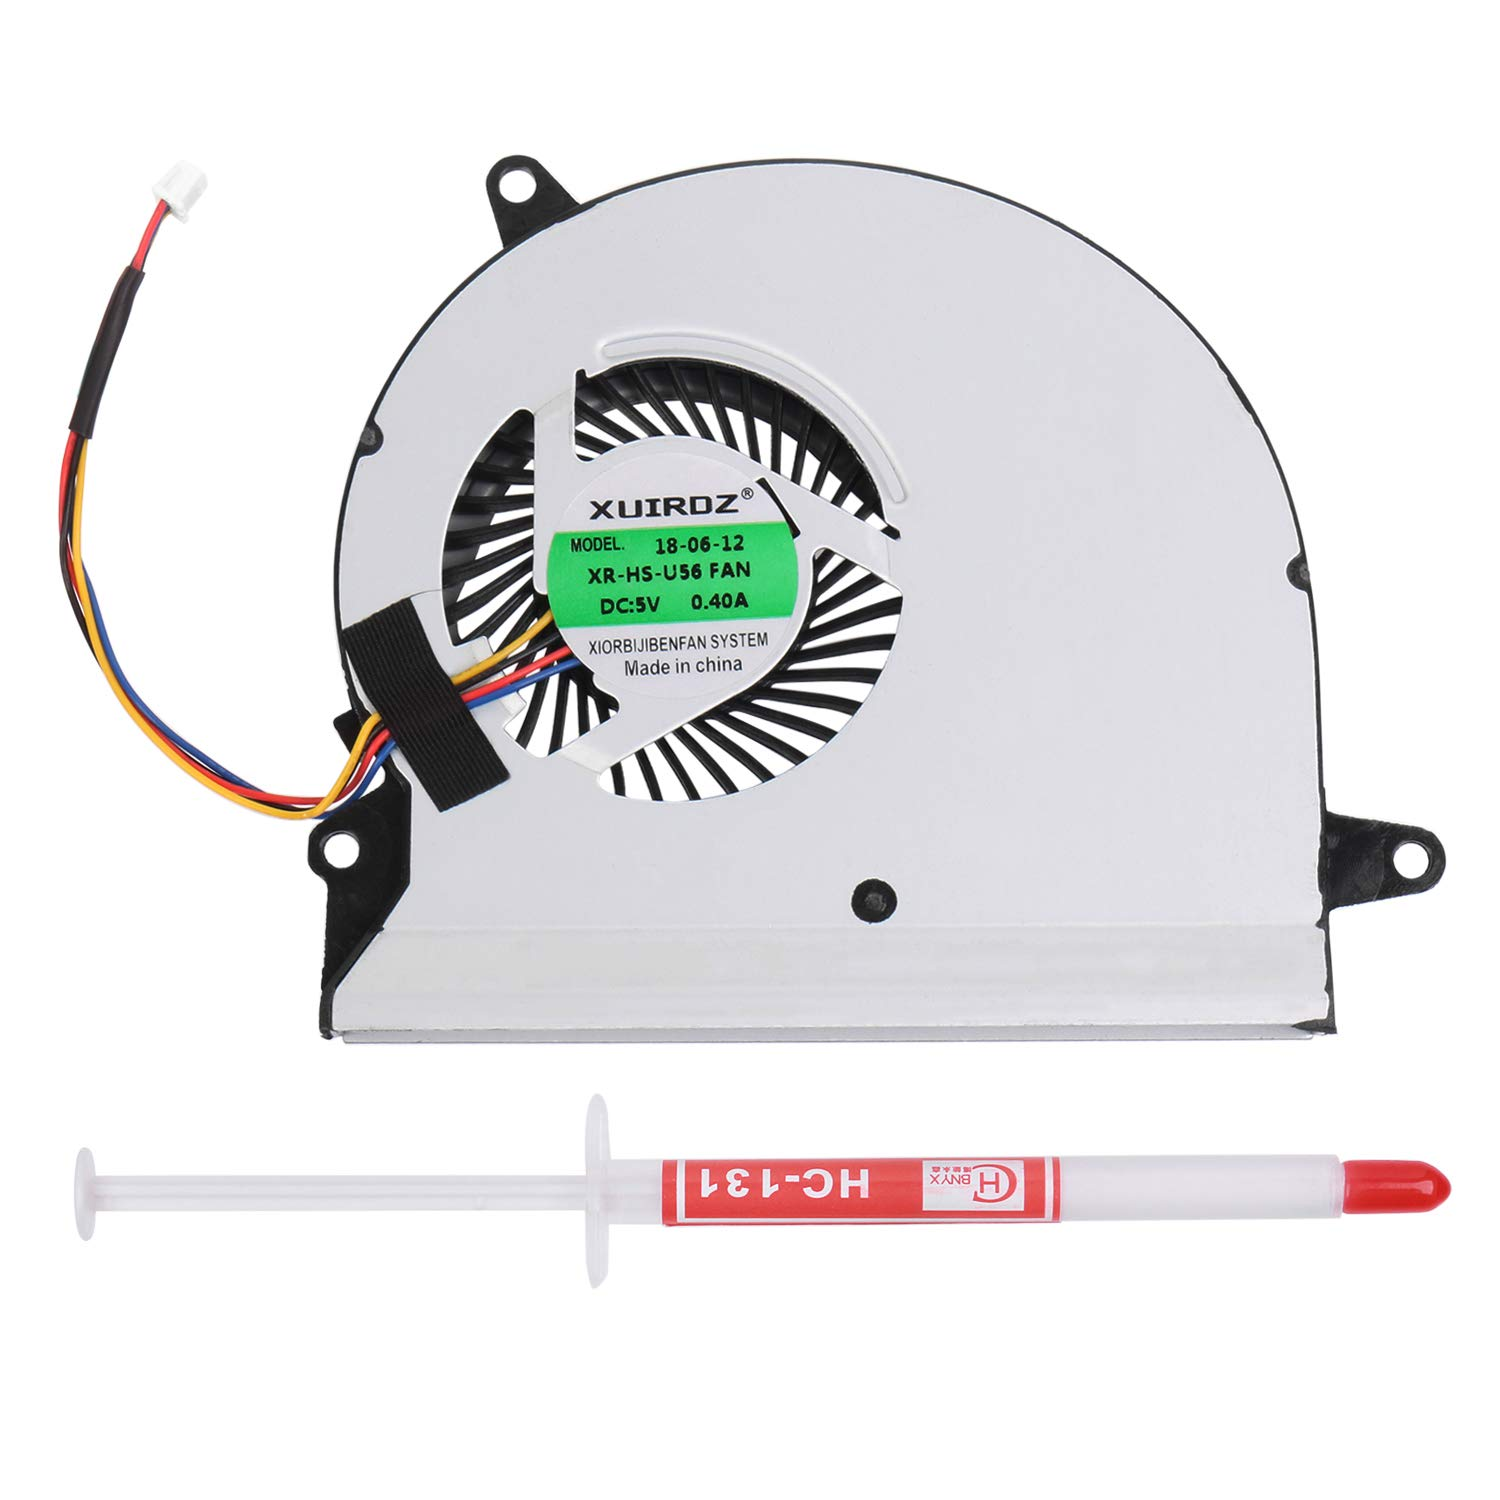 Li-SUN Laptop CPU Cooling Fan for Clevo P150 P150EM P170 P370 P570 760M 750S NP8130 NP8150 NP8170 NP9150 Series Cooler Heatsink Fan with Thermal Grease(P/N 6-31-X720S-101 BS6005MS-U94)